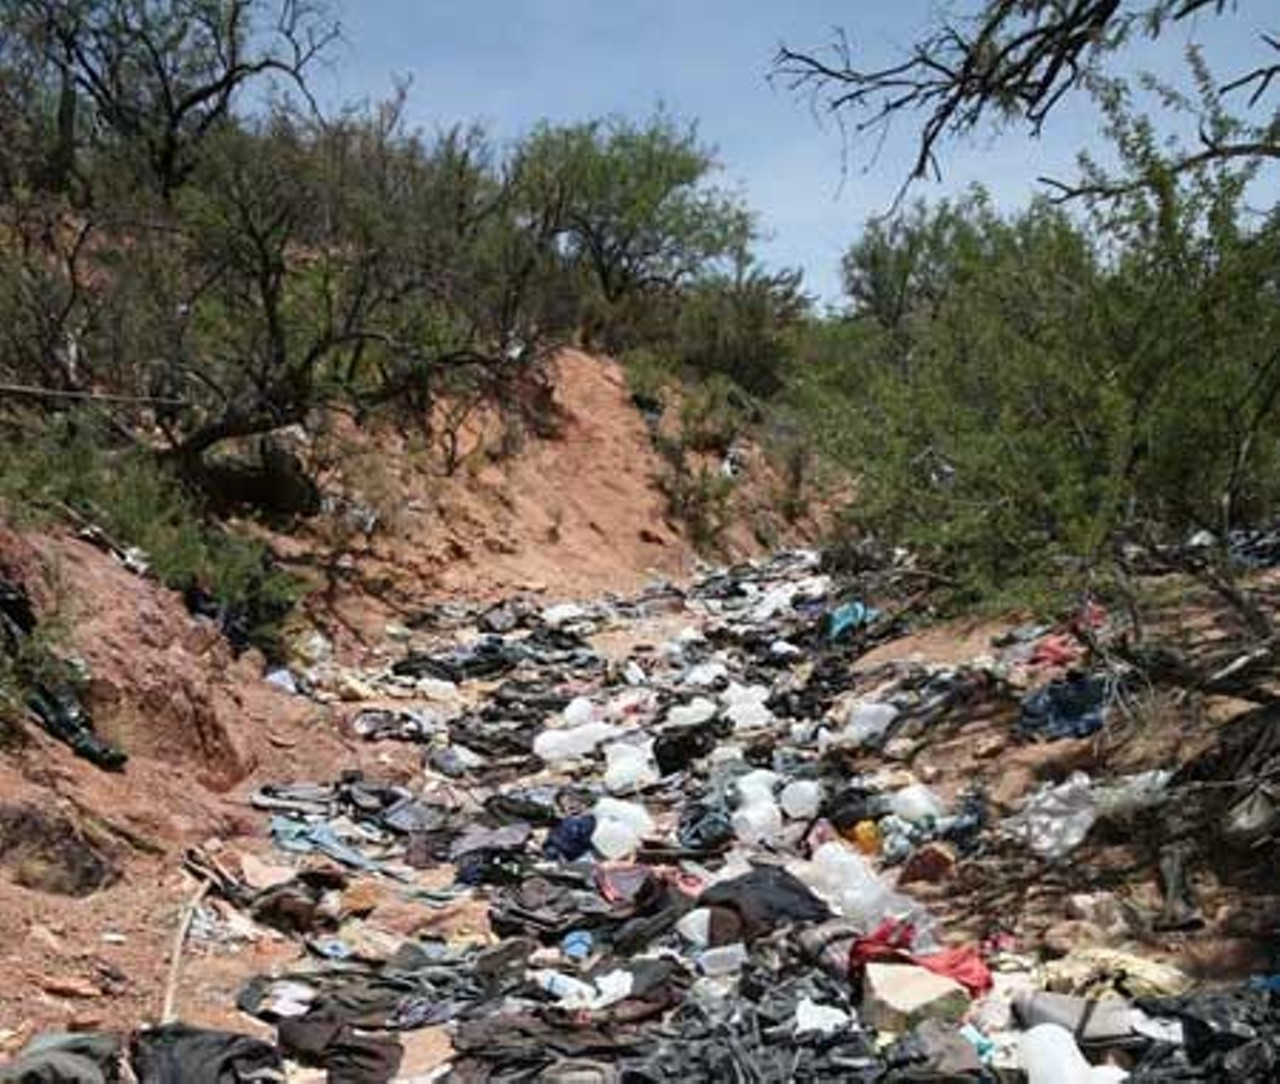 LEO W. BANKS - This trash-filled wash is below Diablito Mountain, about 5 miles - west of Interstate 19, southwest of Arivaca Junction. It is 21 miles - north of the border at Nogales. The illegal aliens who dump their trash - here have just emerged from the Tumacacori Highlands, which are also - trashed out.